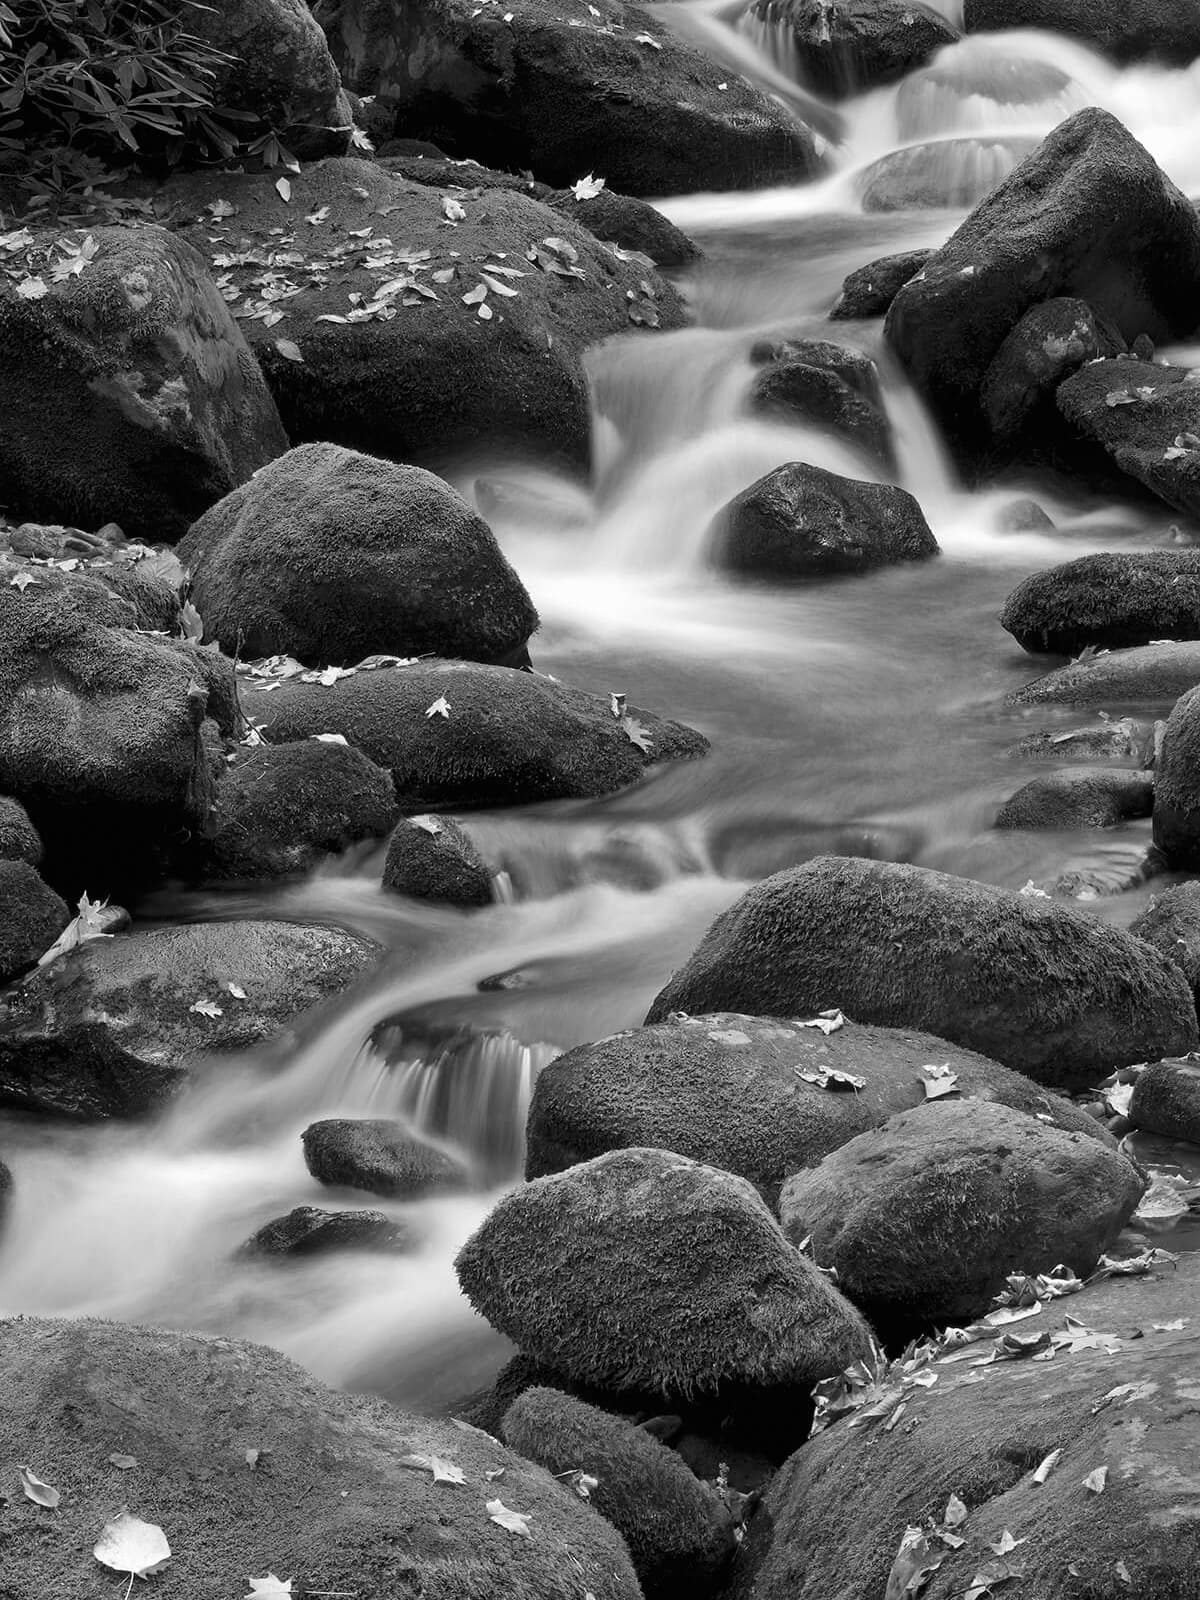 Mark Burns photo of Roaring Fork Branch at Great Smoky Mountain National Park